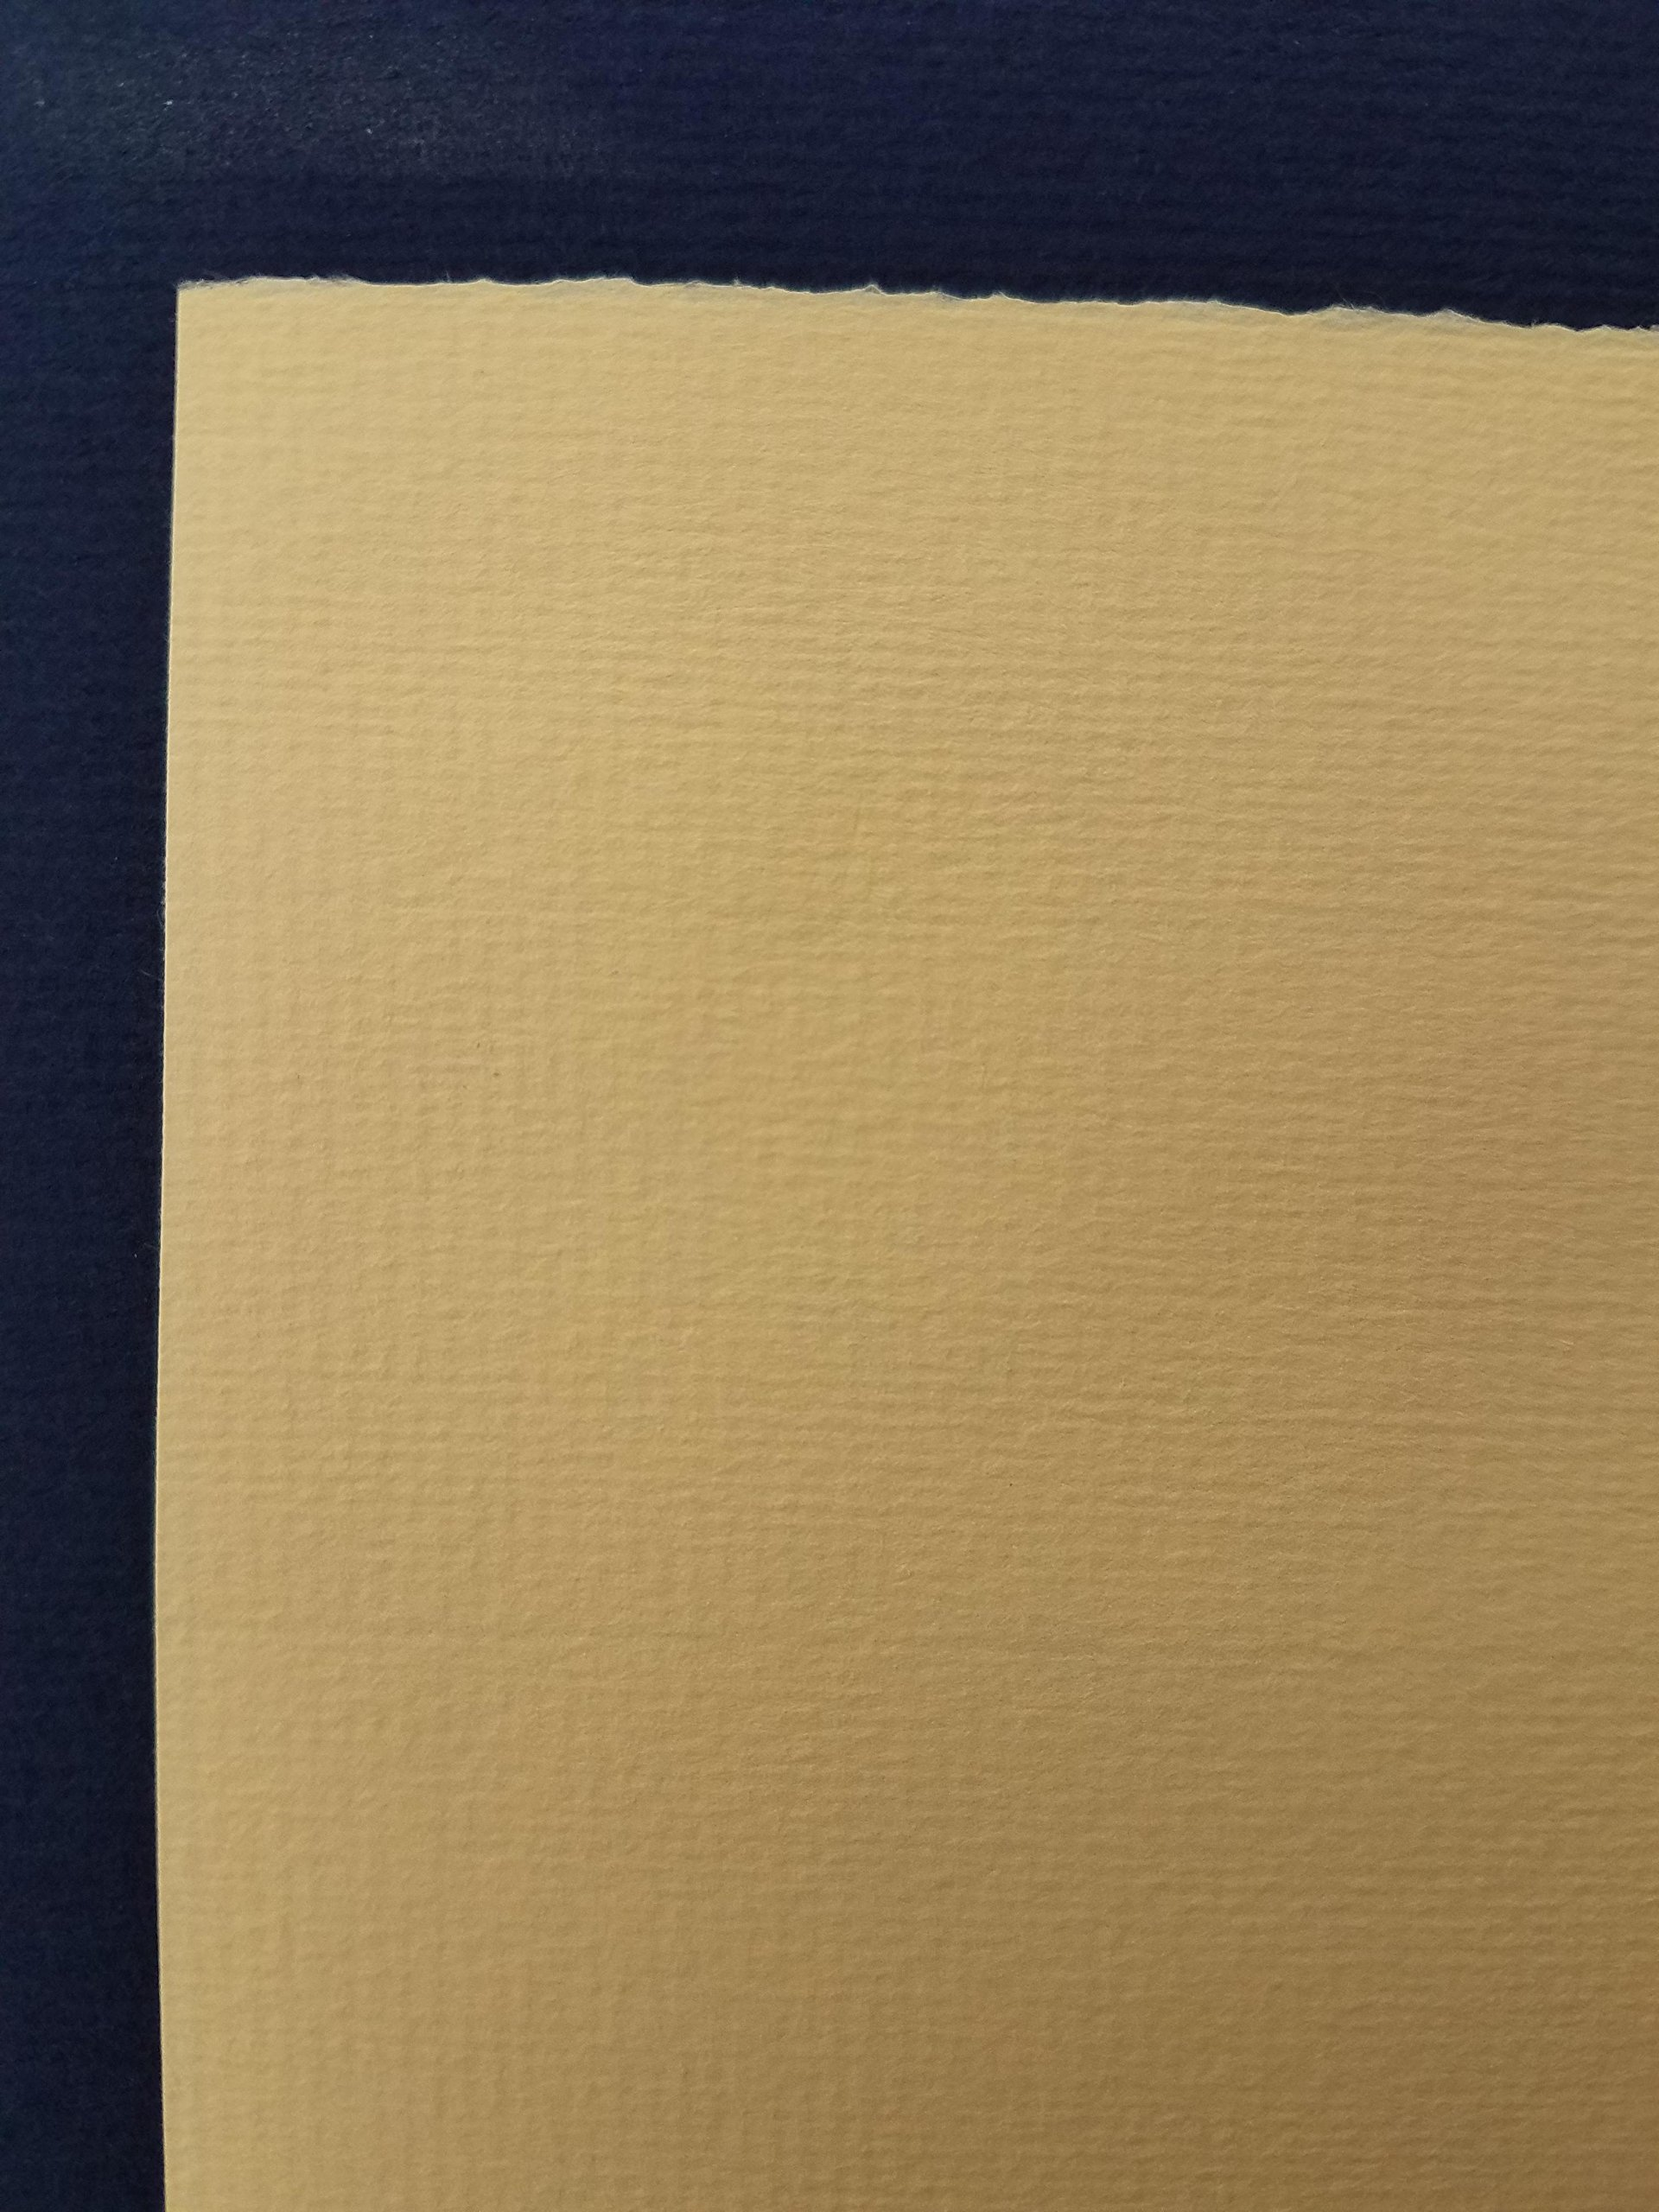 Hahnemuhle Bugra, Butter Yellow 300, 33'' x 41'', 130 gsm (15 Sheet Package)